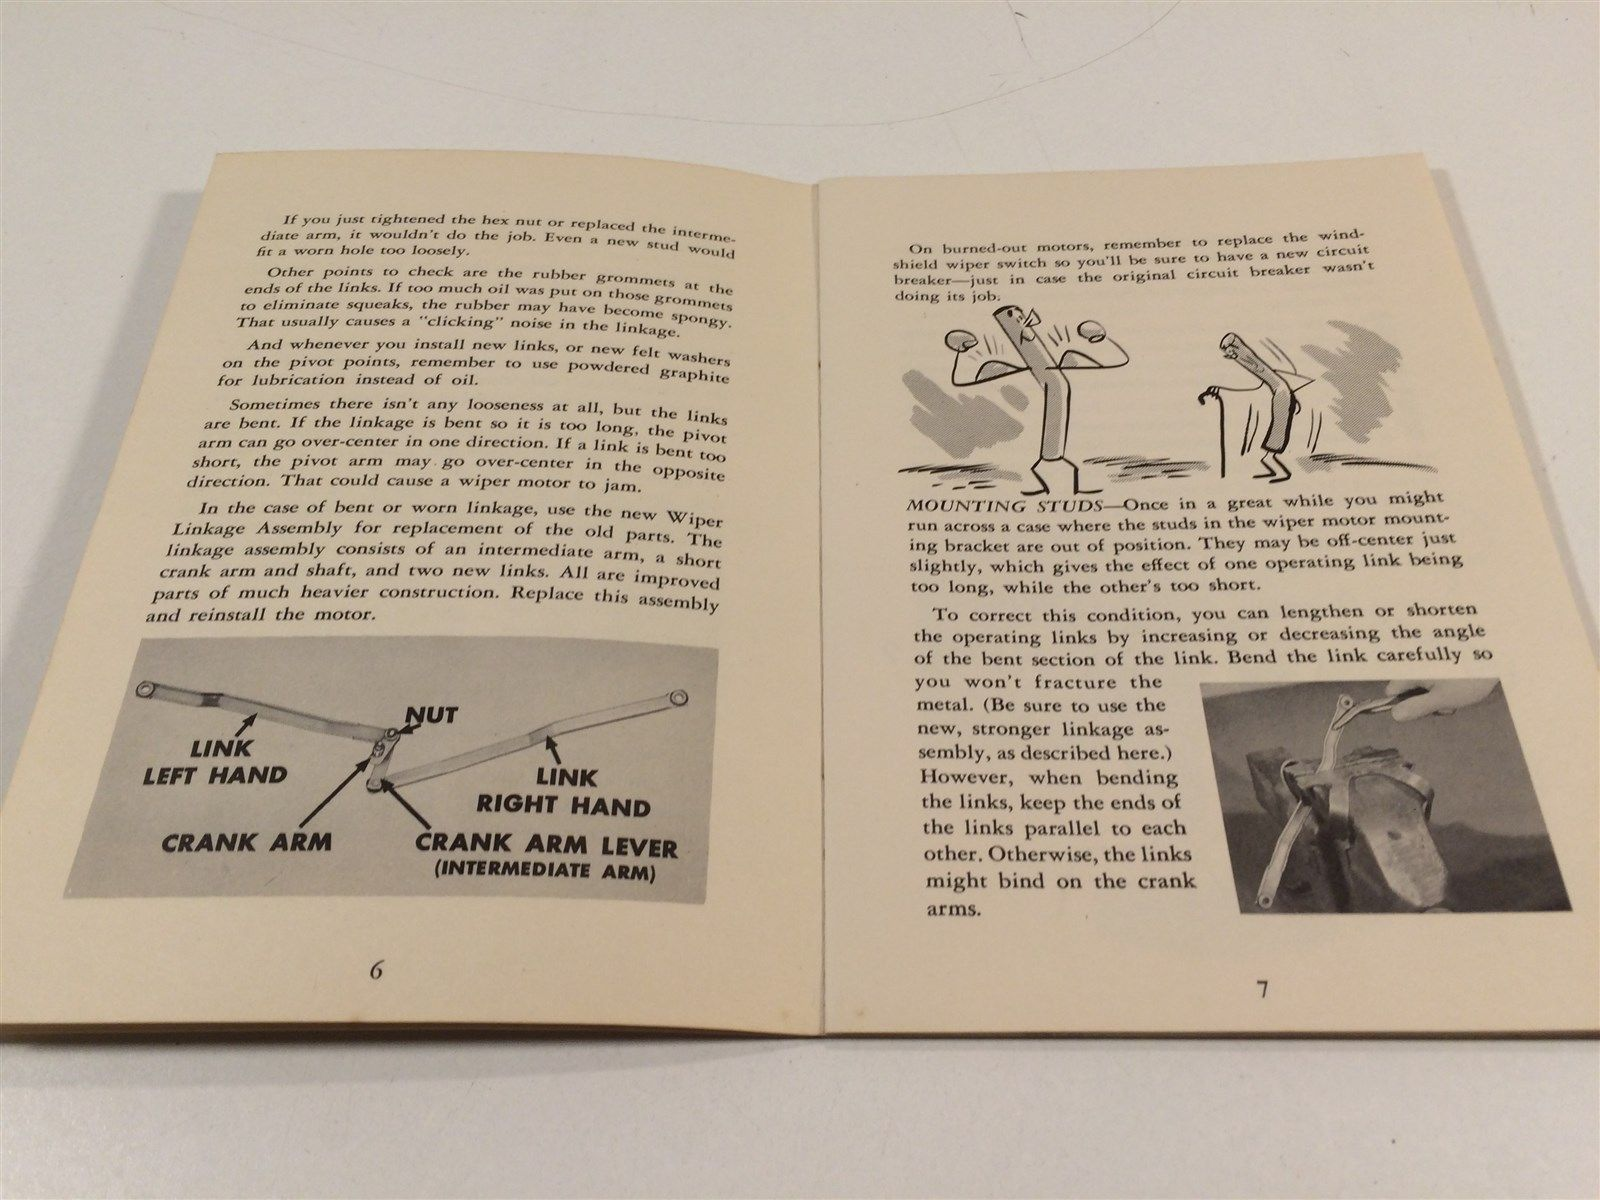 1952 Chrysler Corporation Service Reference Book V5 No4  Servicing Tips